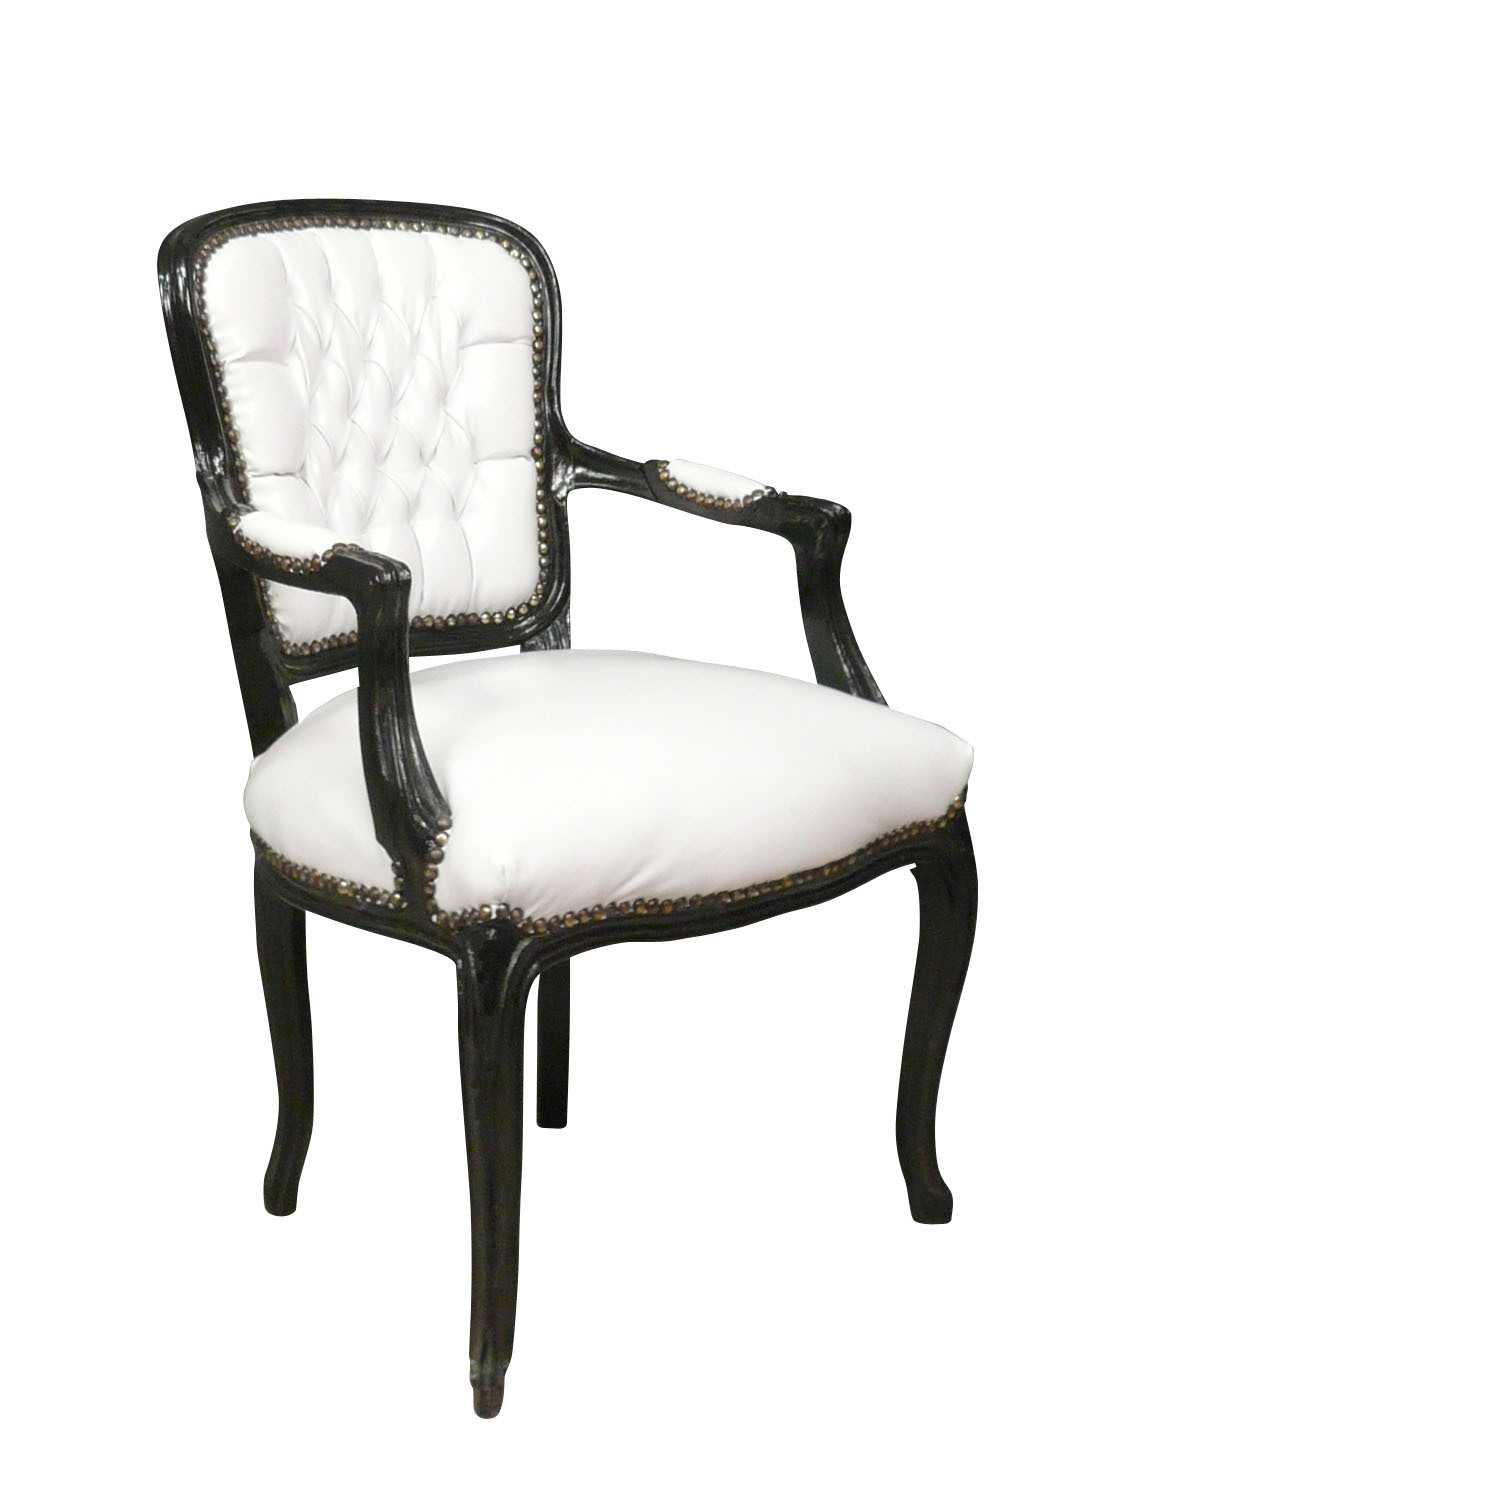 tous nos fauteuils louis xv en photo mobilier style louis xv. Black Bedroom Furniture Sets. Home Design Ideas